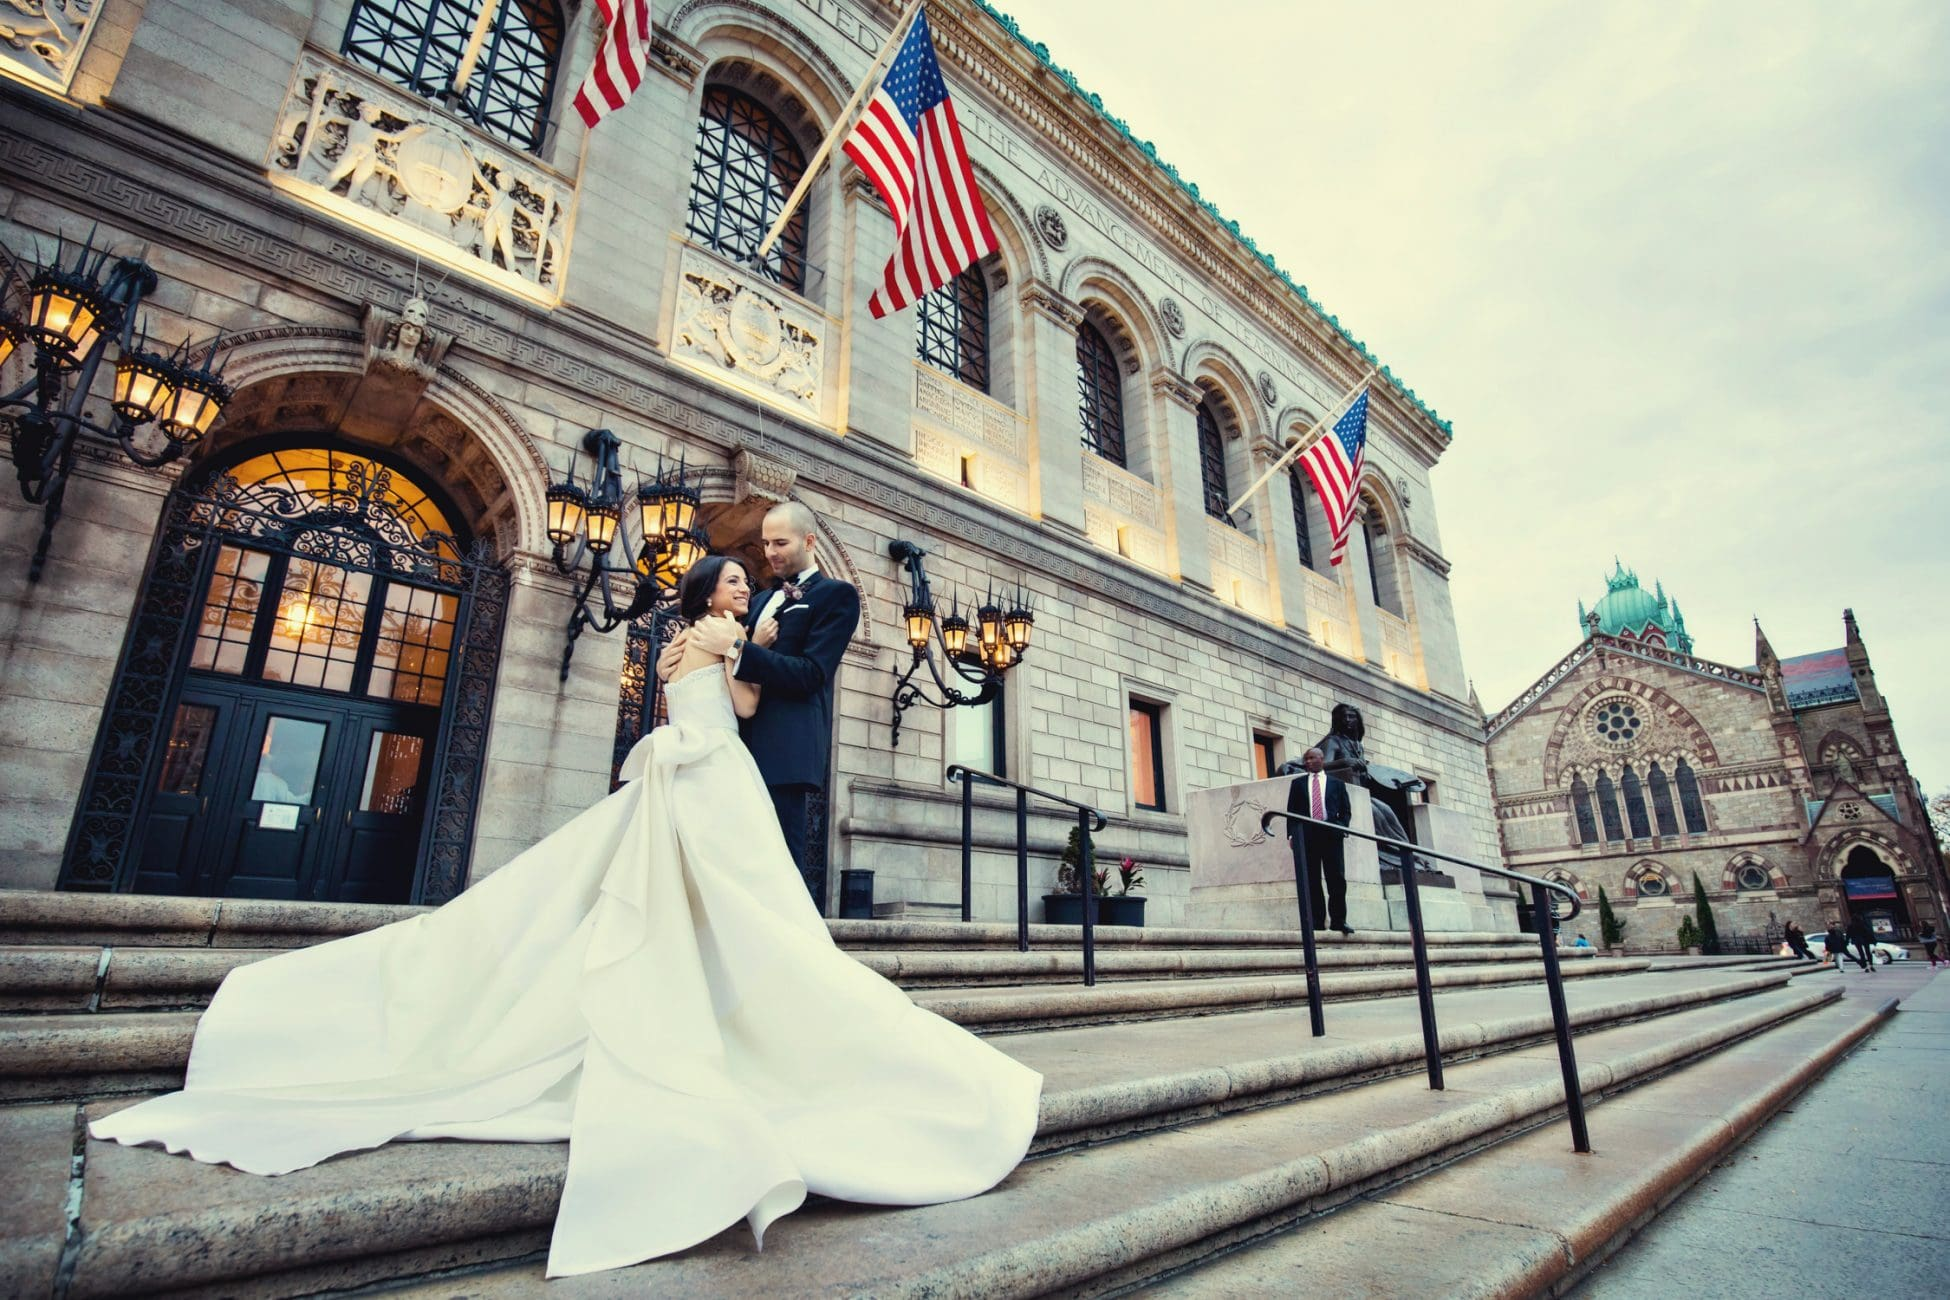 Photograph of Married Couple in Front of the Boston Public Library